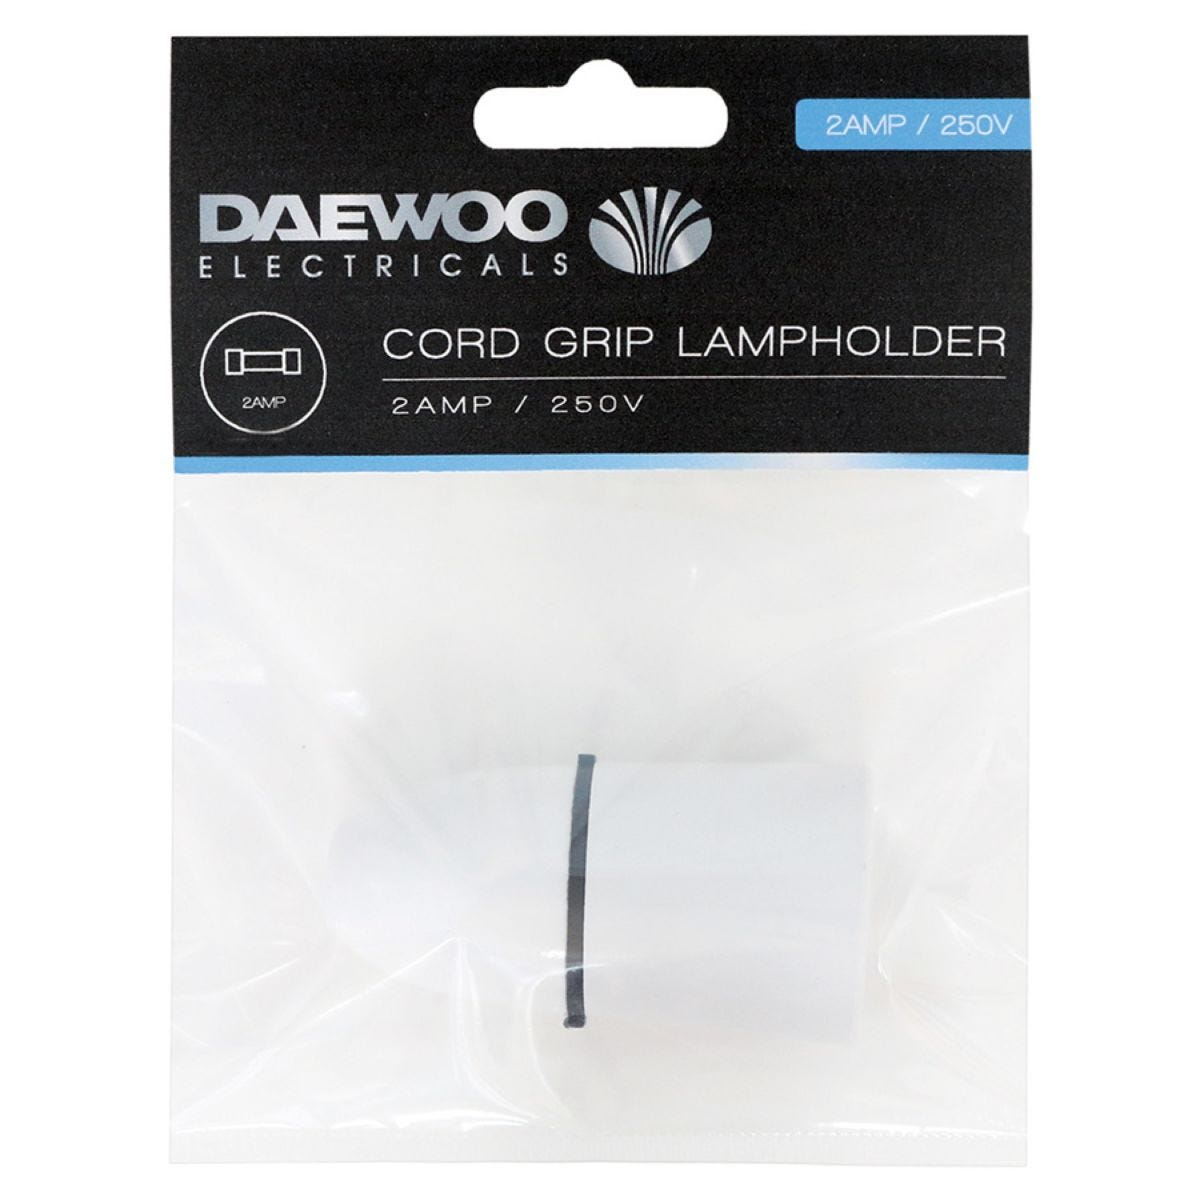 Daewoo Cord Grip Lamp Holder